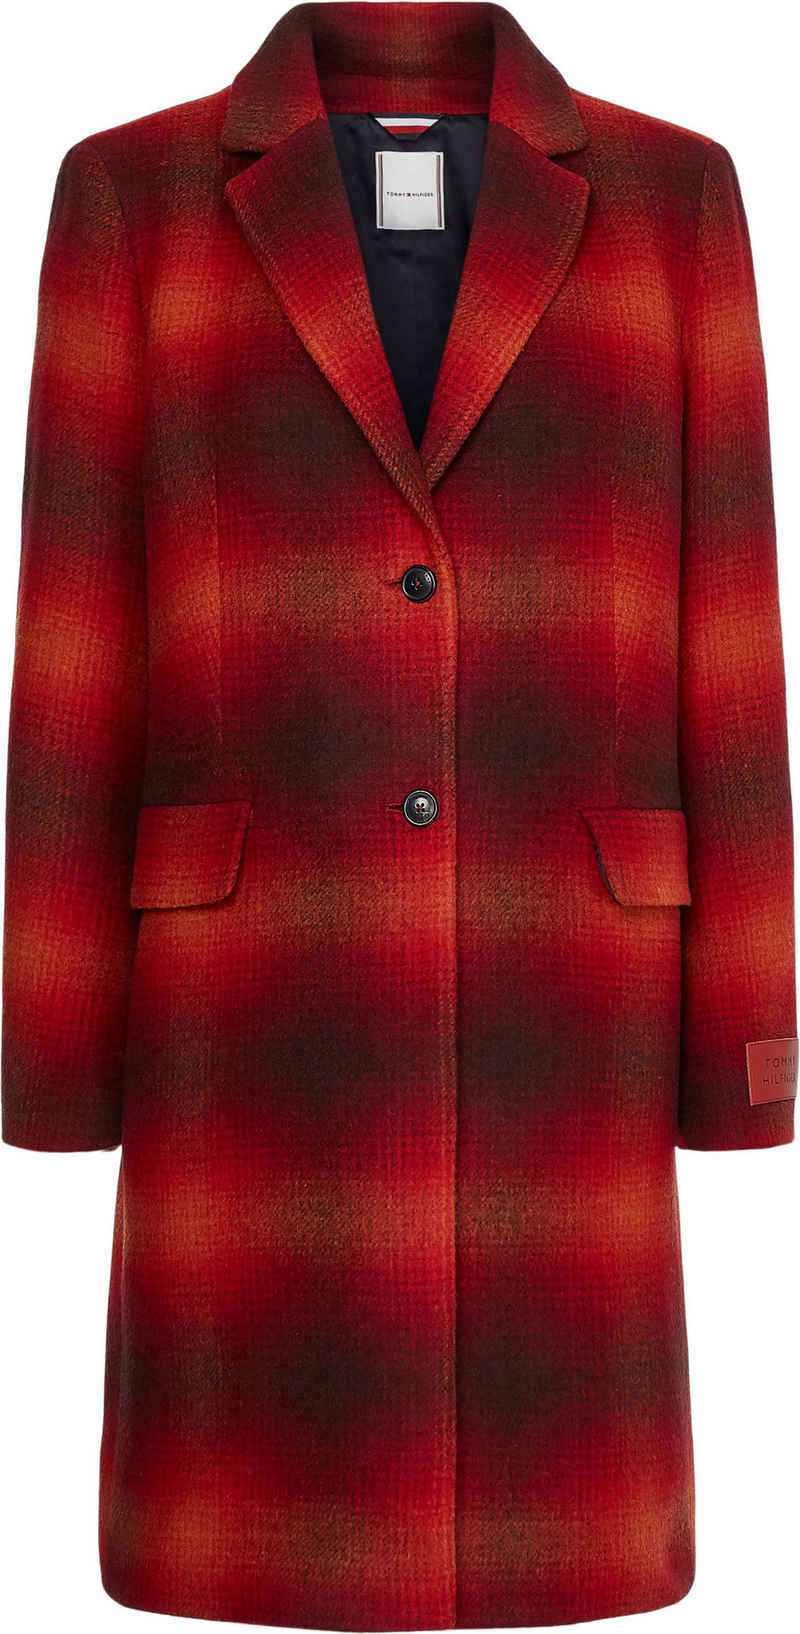 Tommy Hilfiger Wollmantel »WOOL BLEND CHECK CLASSIC COAT« mit Karomuster